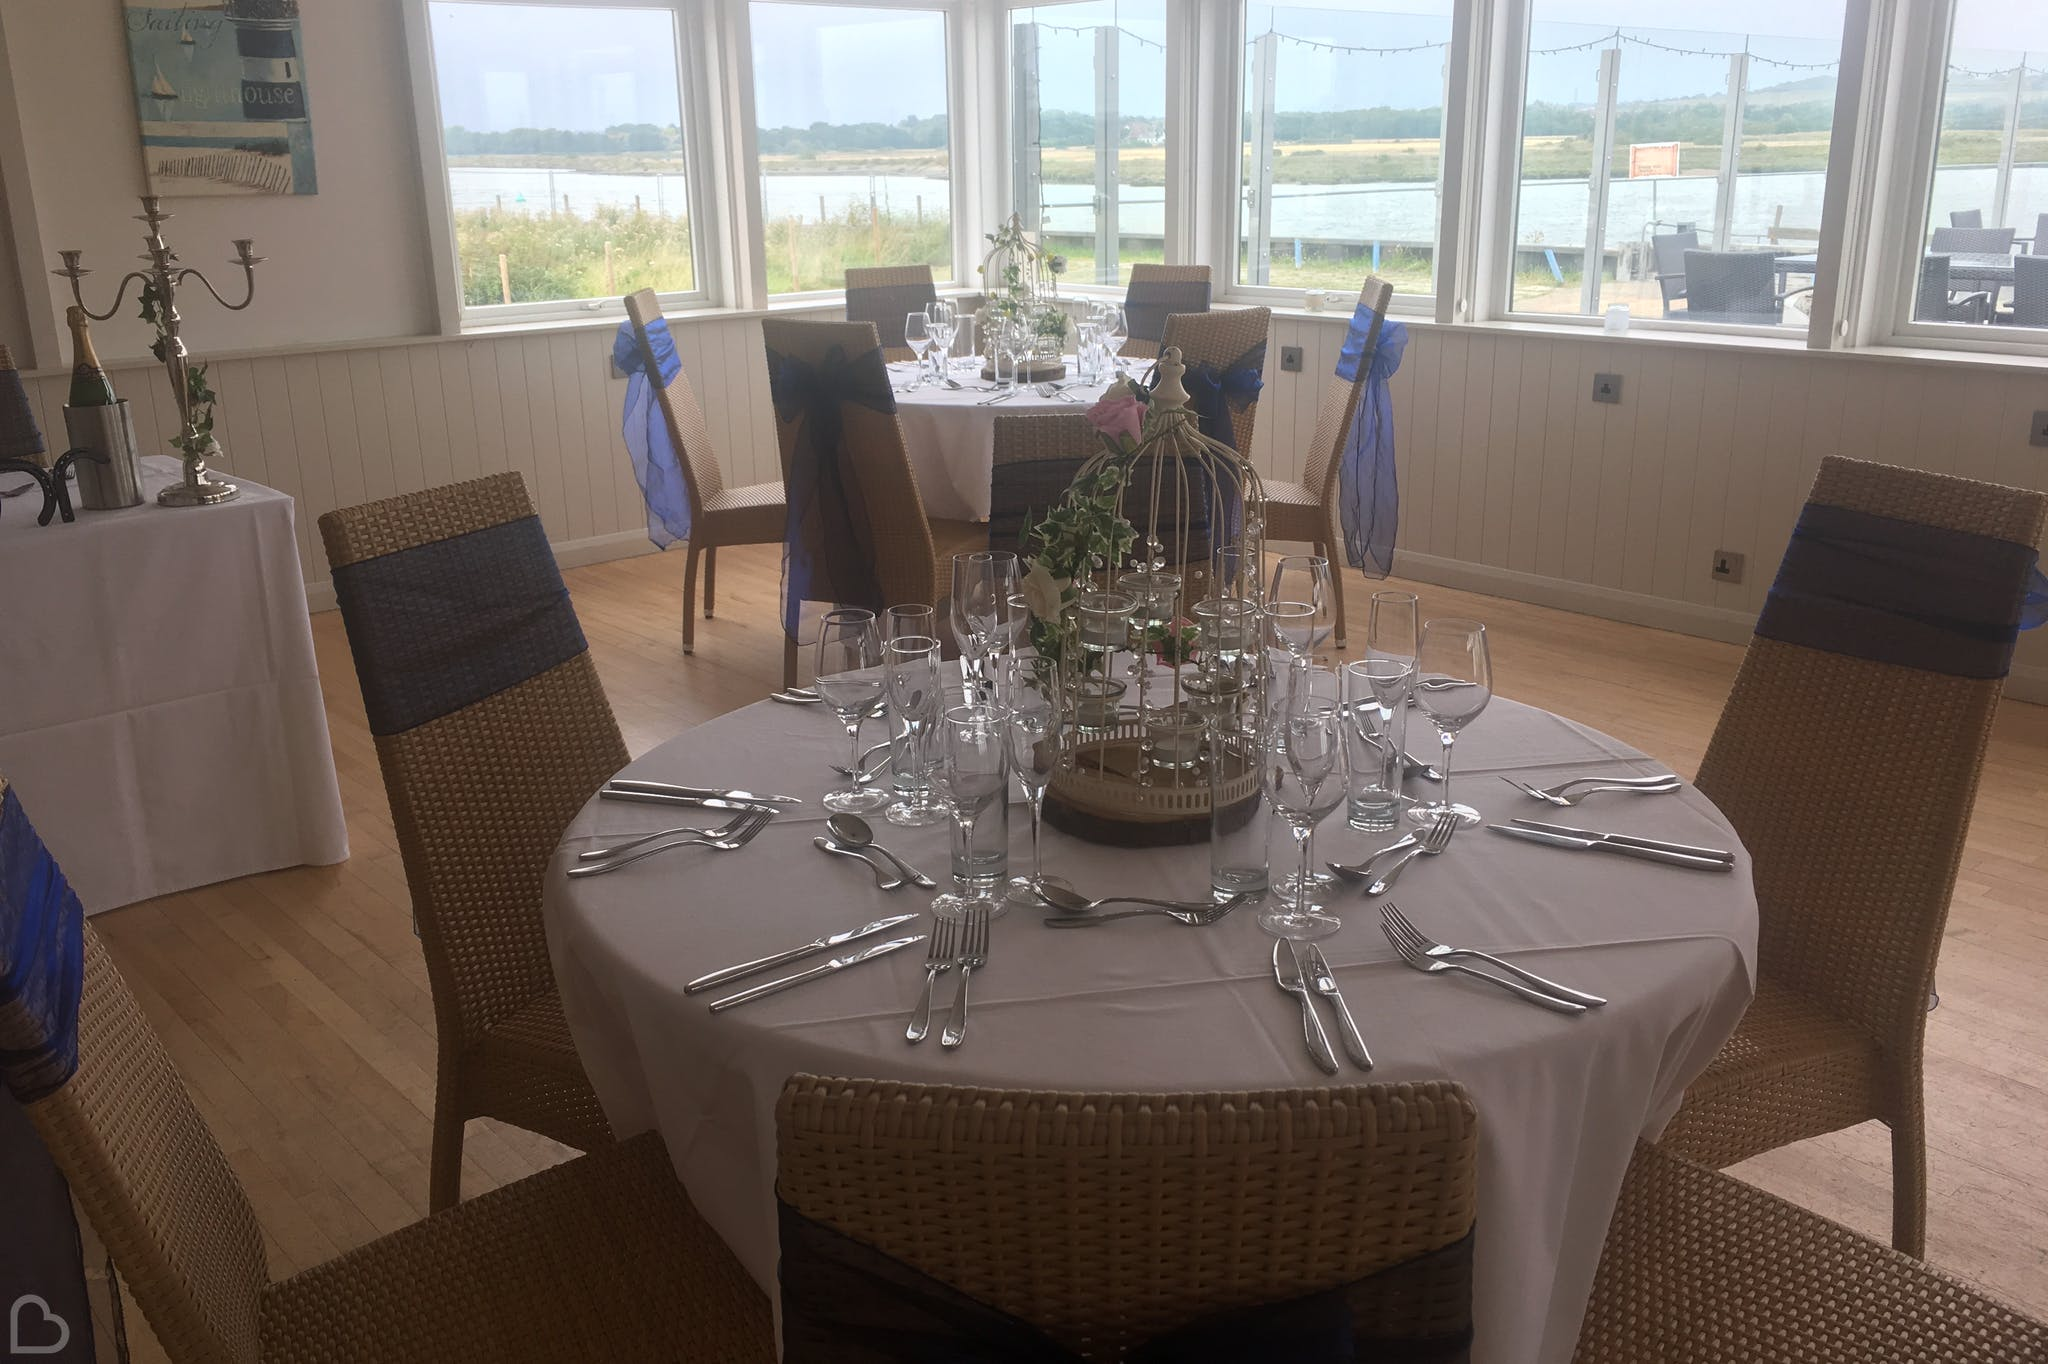 brandy hole wedding venue with tables set for wedding lunch